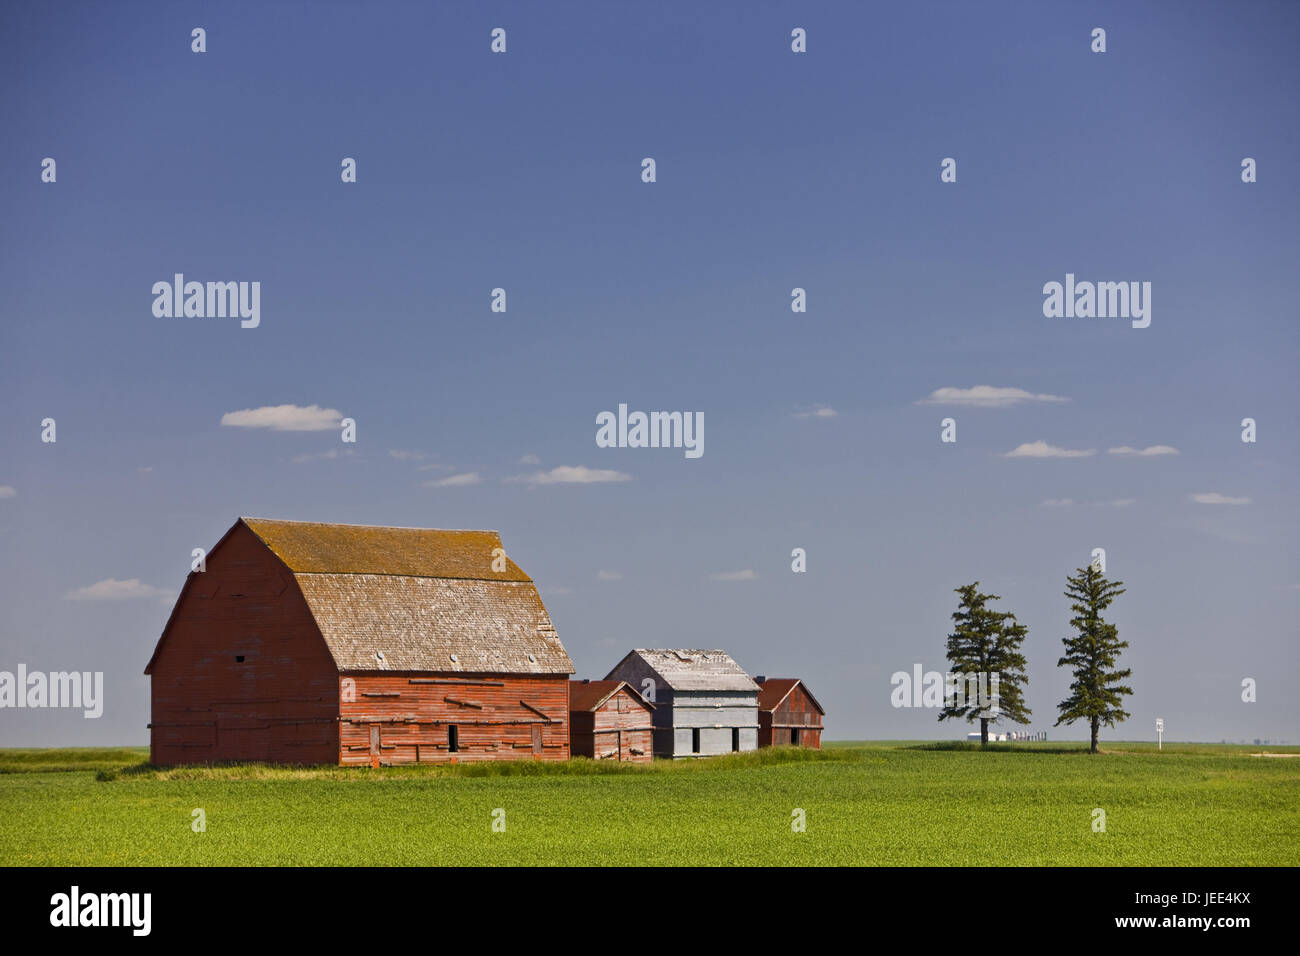 Canada, Saskatchewan, Prärie, meadow, barns, Stock Photo